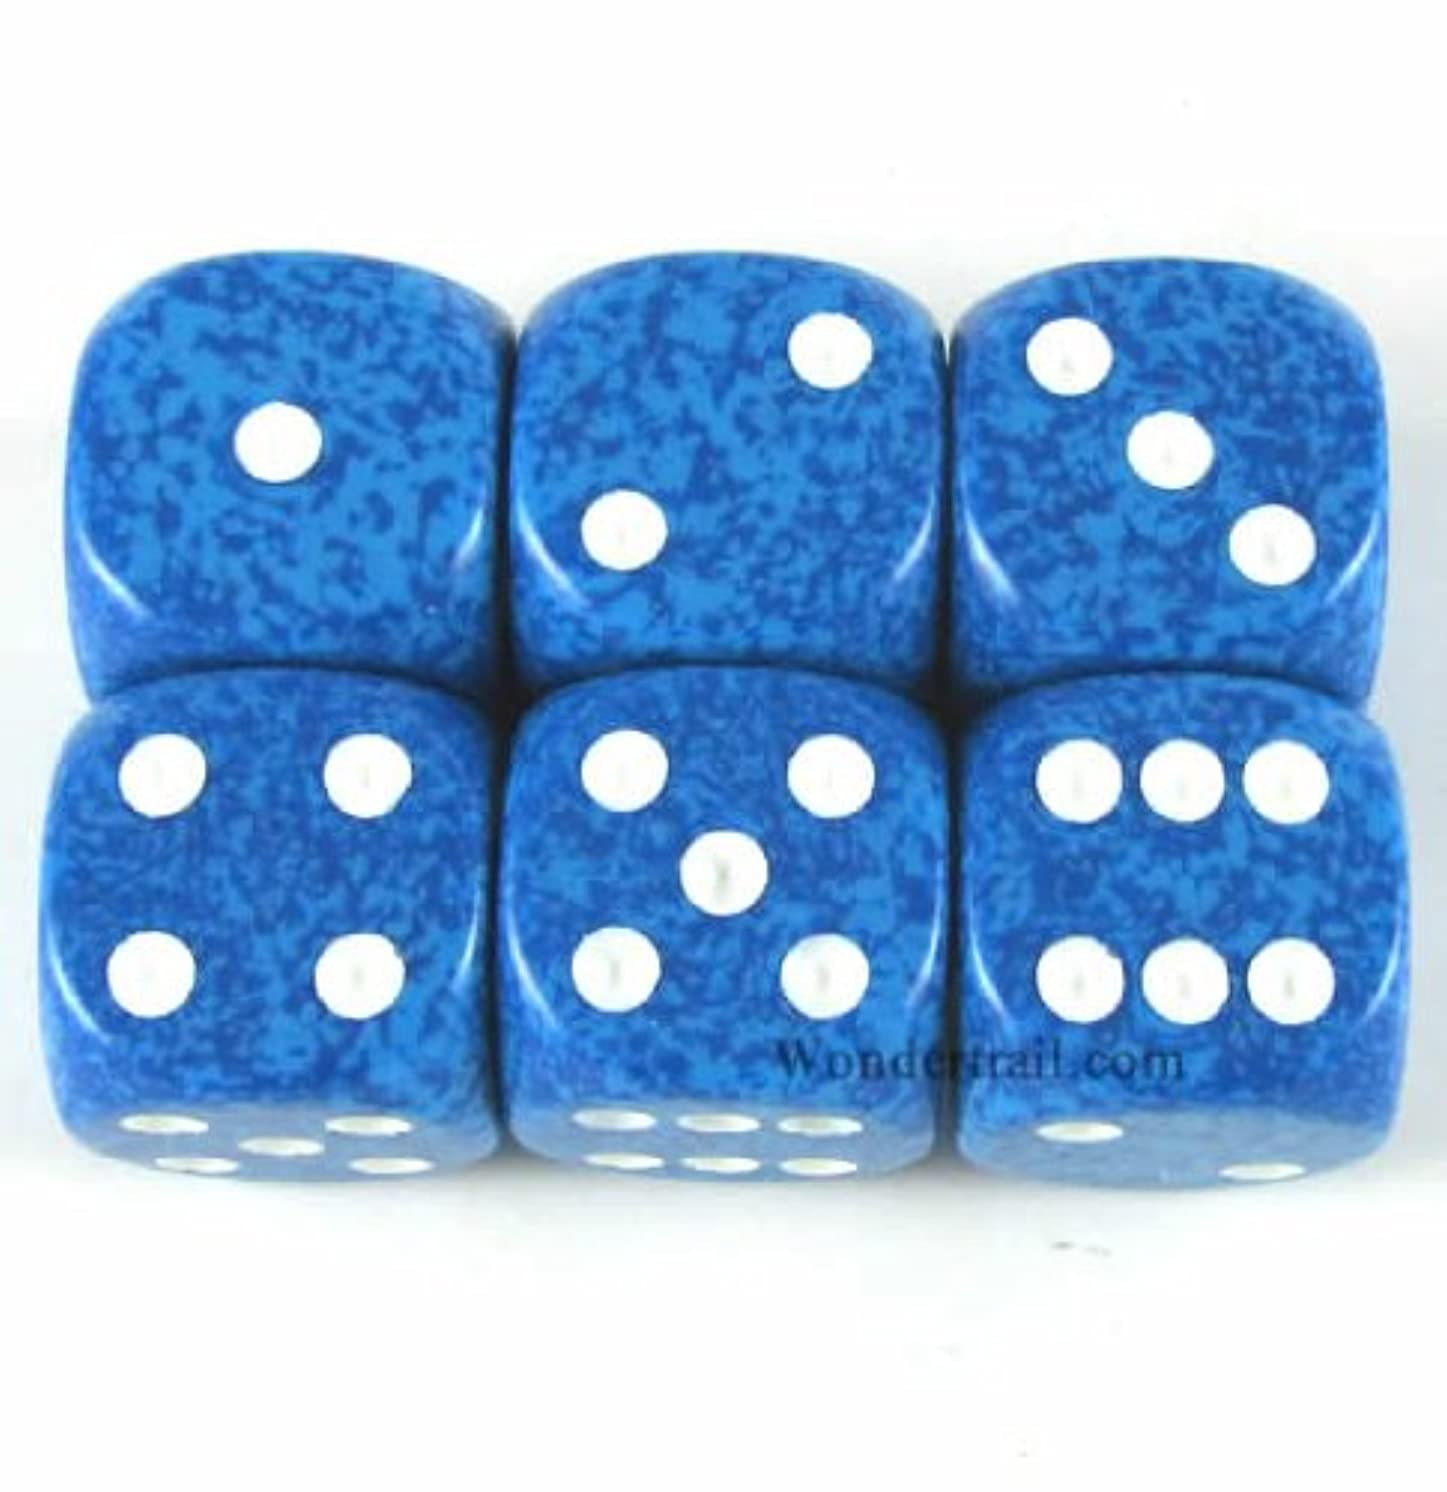 Water Speckled Dice White Pips D6 16mm Pack of 6 Wondertrail WCX25706E6